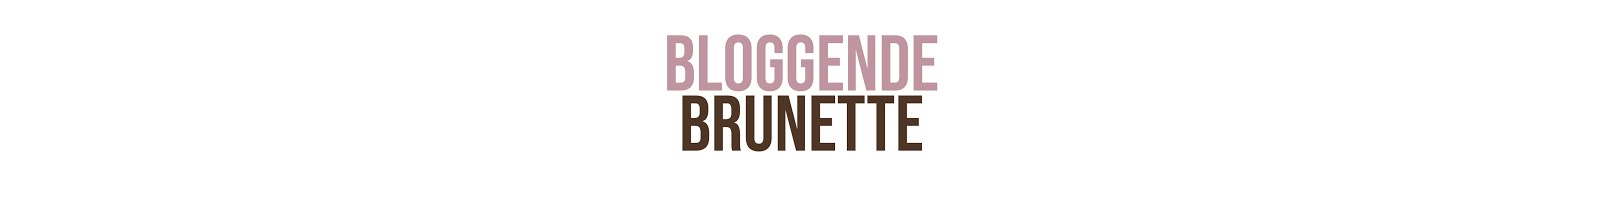 Bloggende Brunette